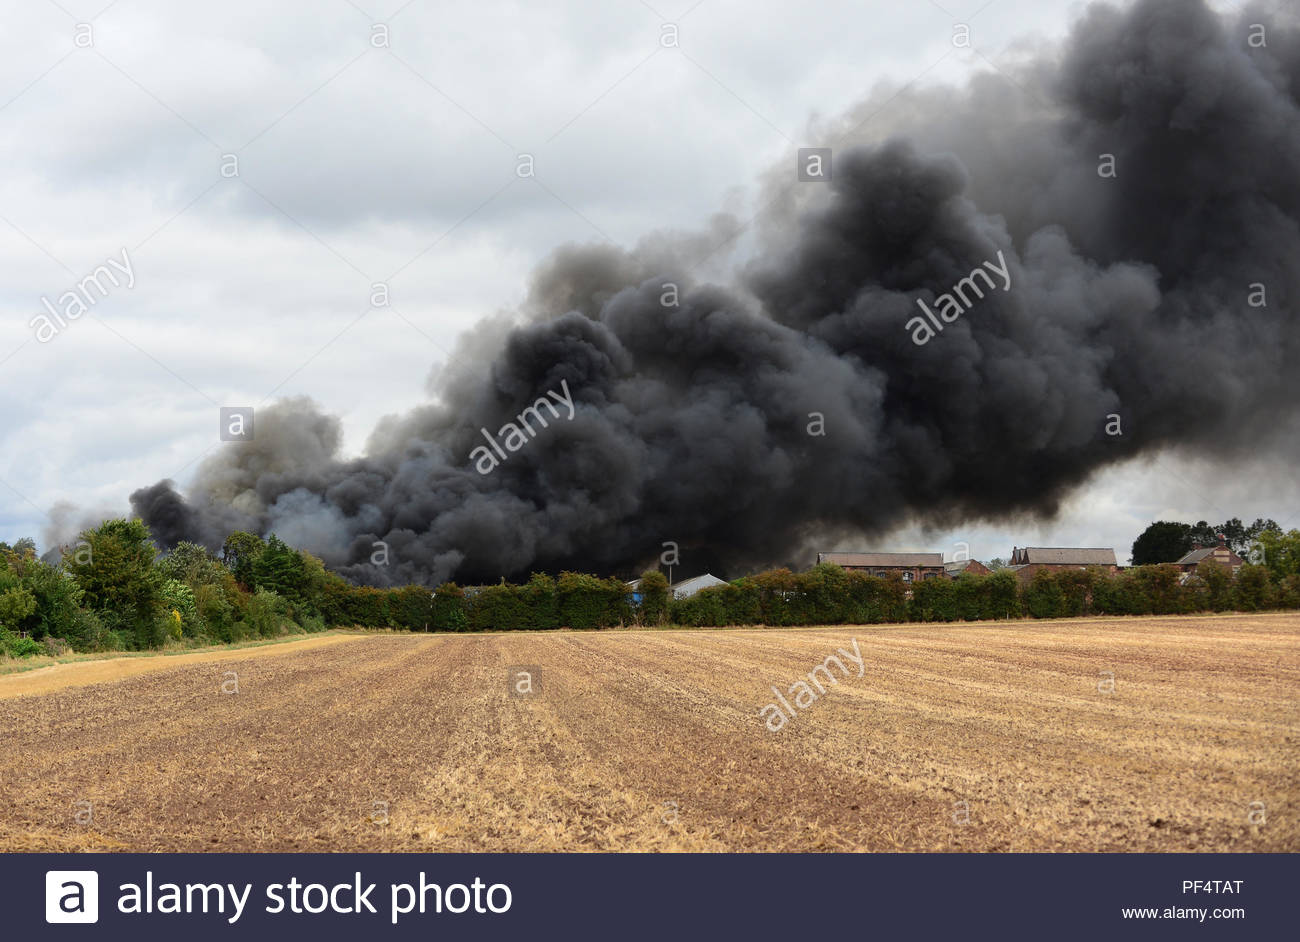 Loughborough, UK. 19 August, 2018. Smoke from a large fire at Hathernware Industrial Estate in Sutton Bonington, Nottinghamshire which shut the midland mainline for a time. Picture Credit: Steve Baker/Alamy Live News - Stock Image